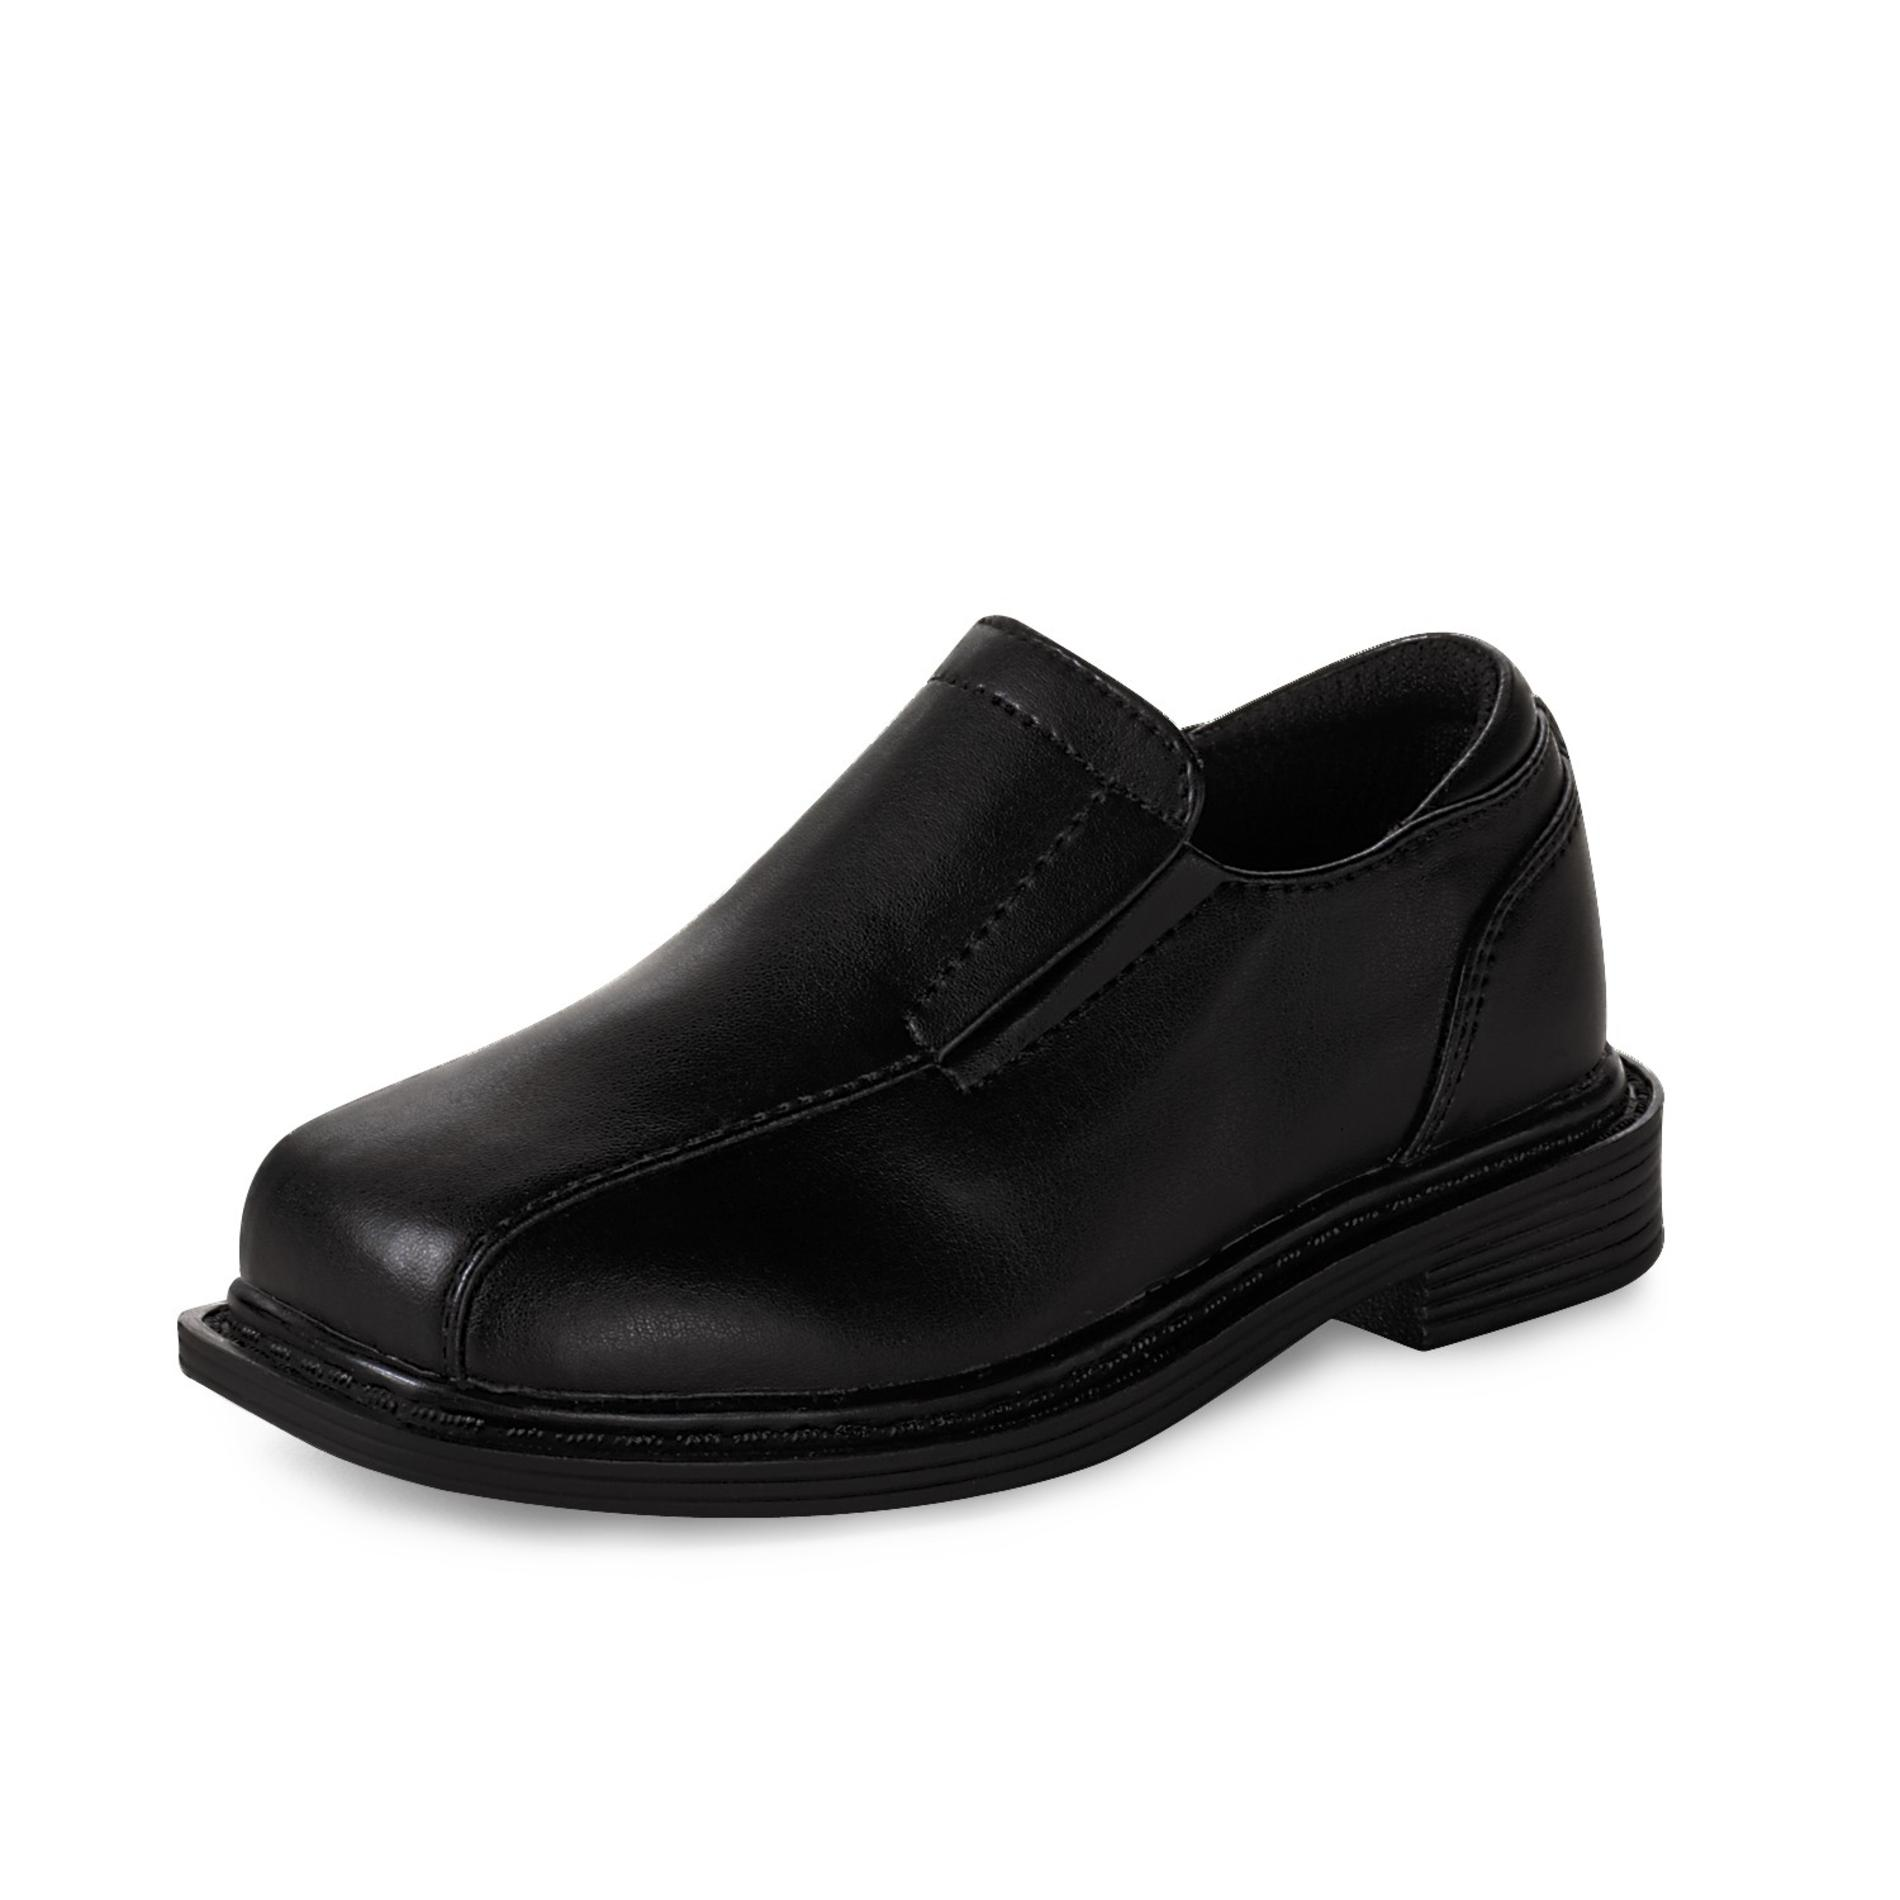 Route 66 Toddler Boy's Dress Shoe Arnold 3 - Black